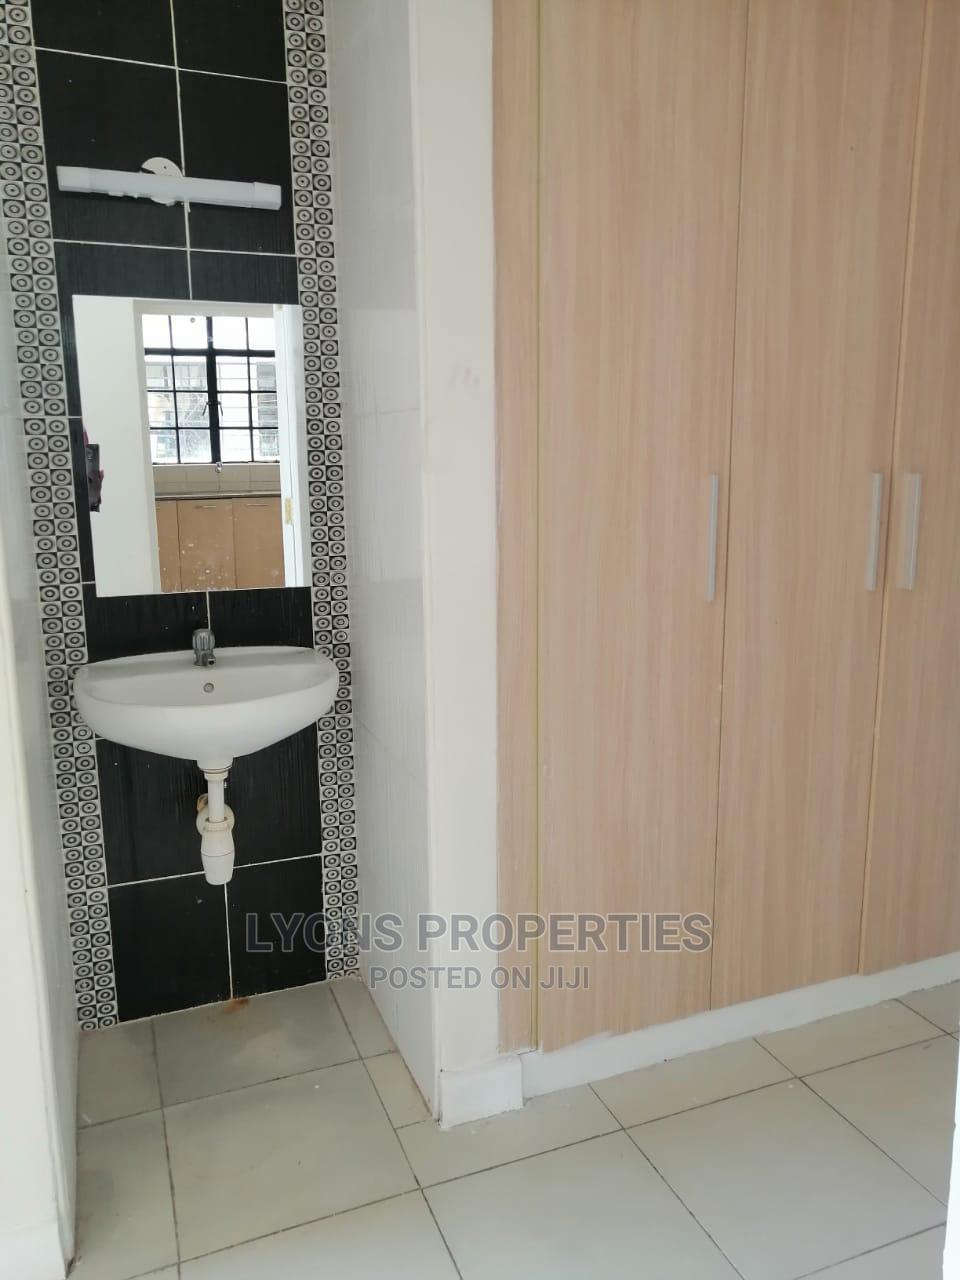 3bdrm Shared Apartment in Syokimau for rent | Houses & Apartments For Rent for sale in Syokimau, Machakos, Kenya